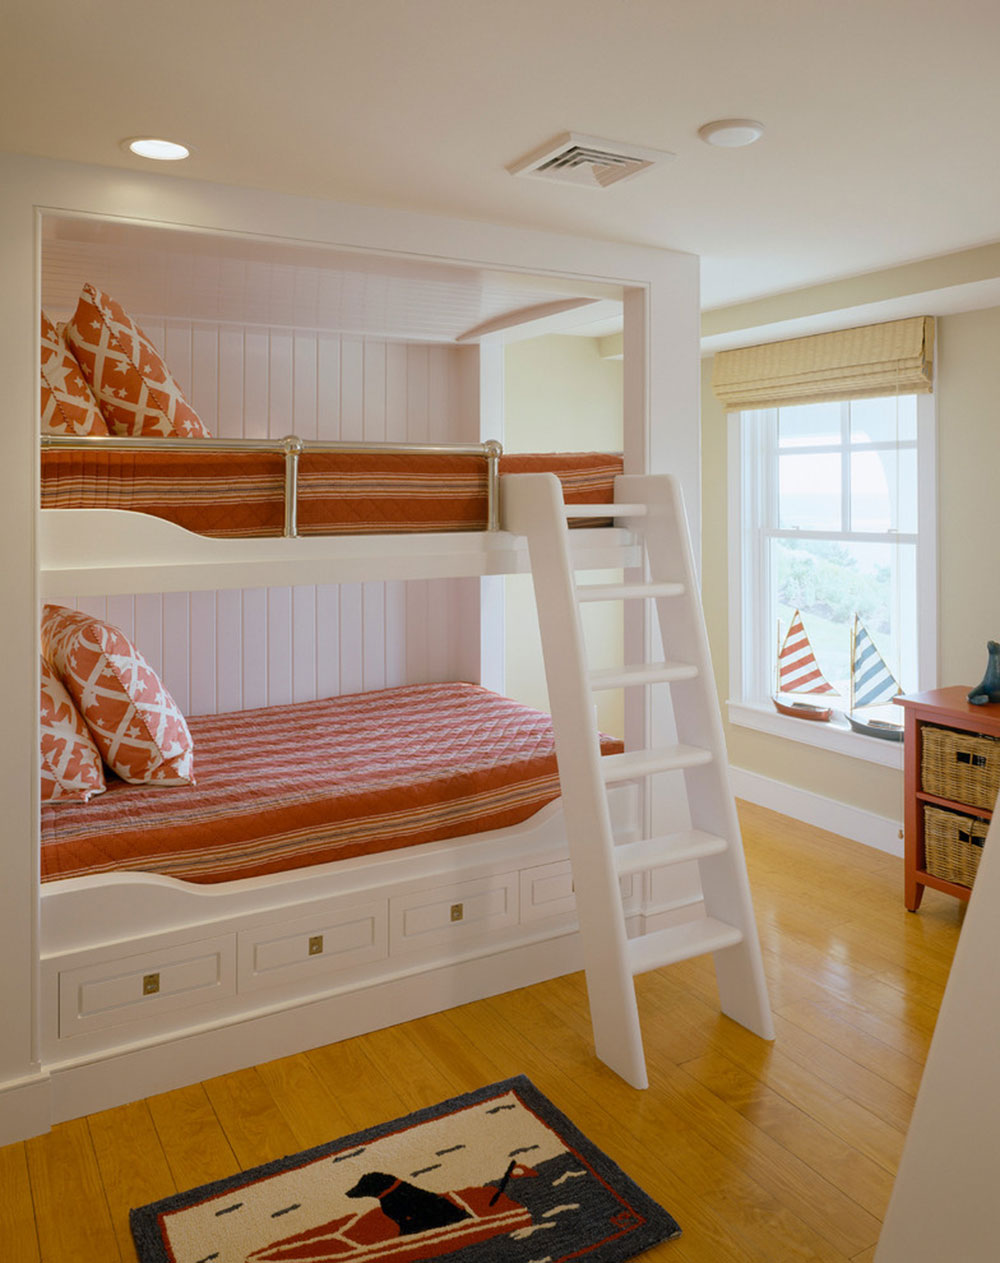 Bunk beds for girls and boys - Your Child Will Love These Bunk Beds With Stairs4